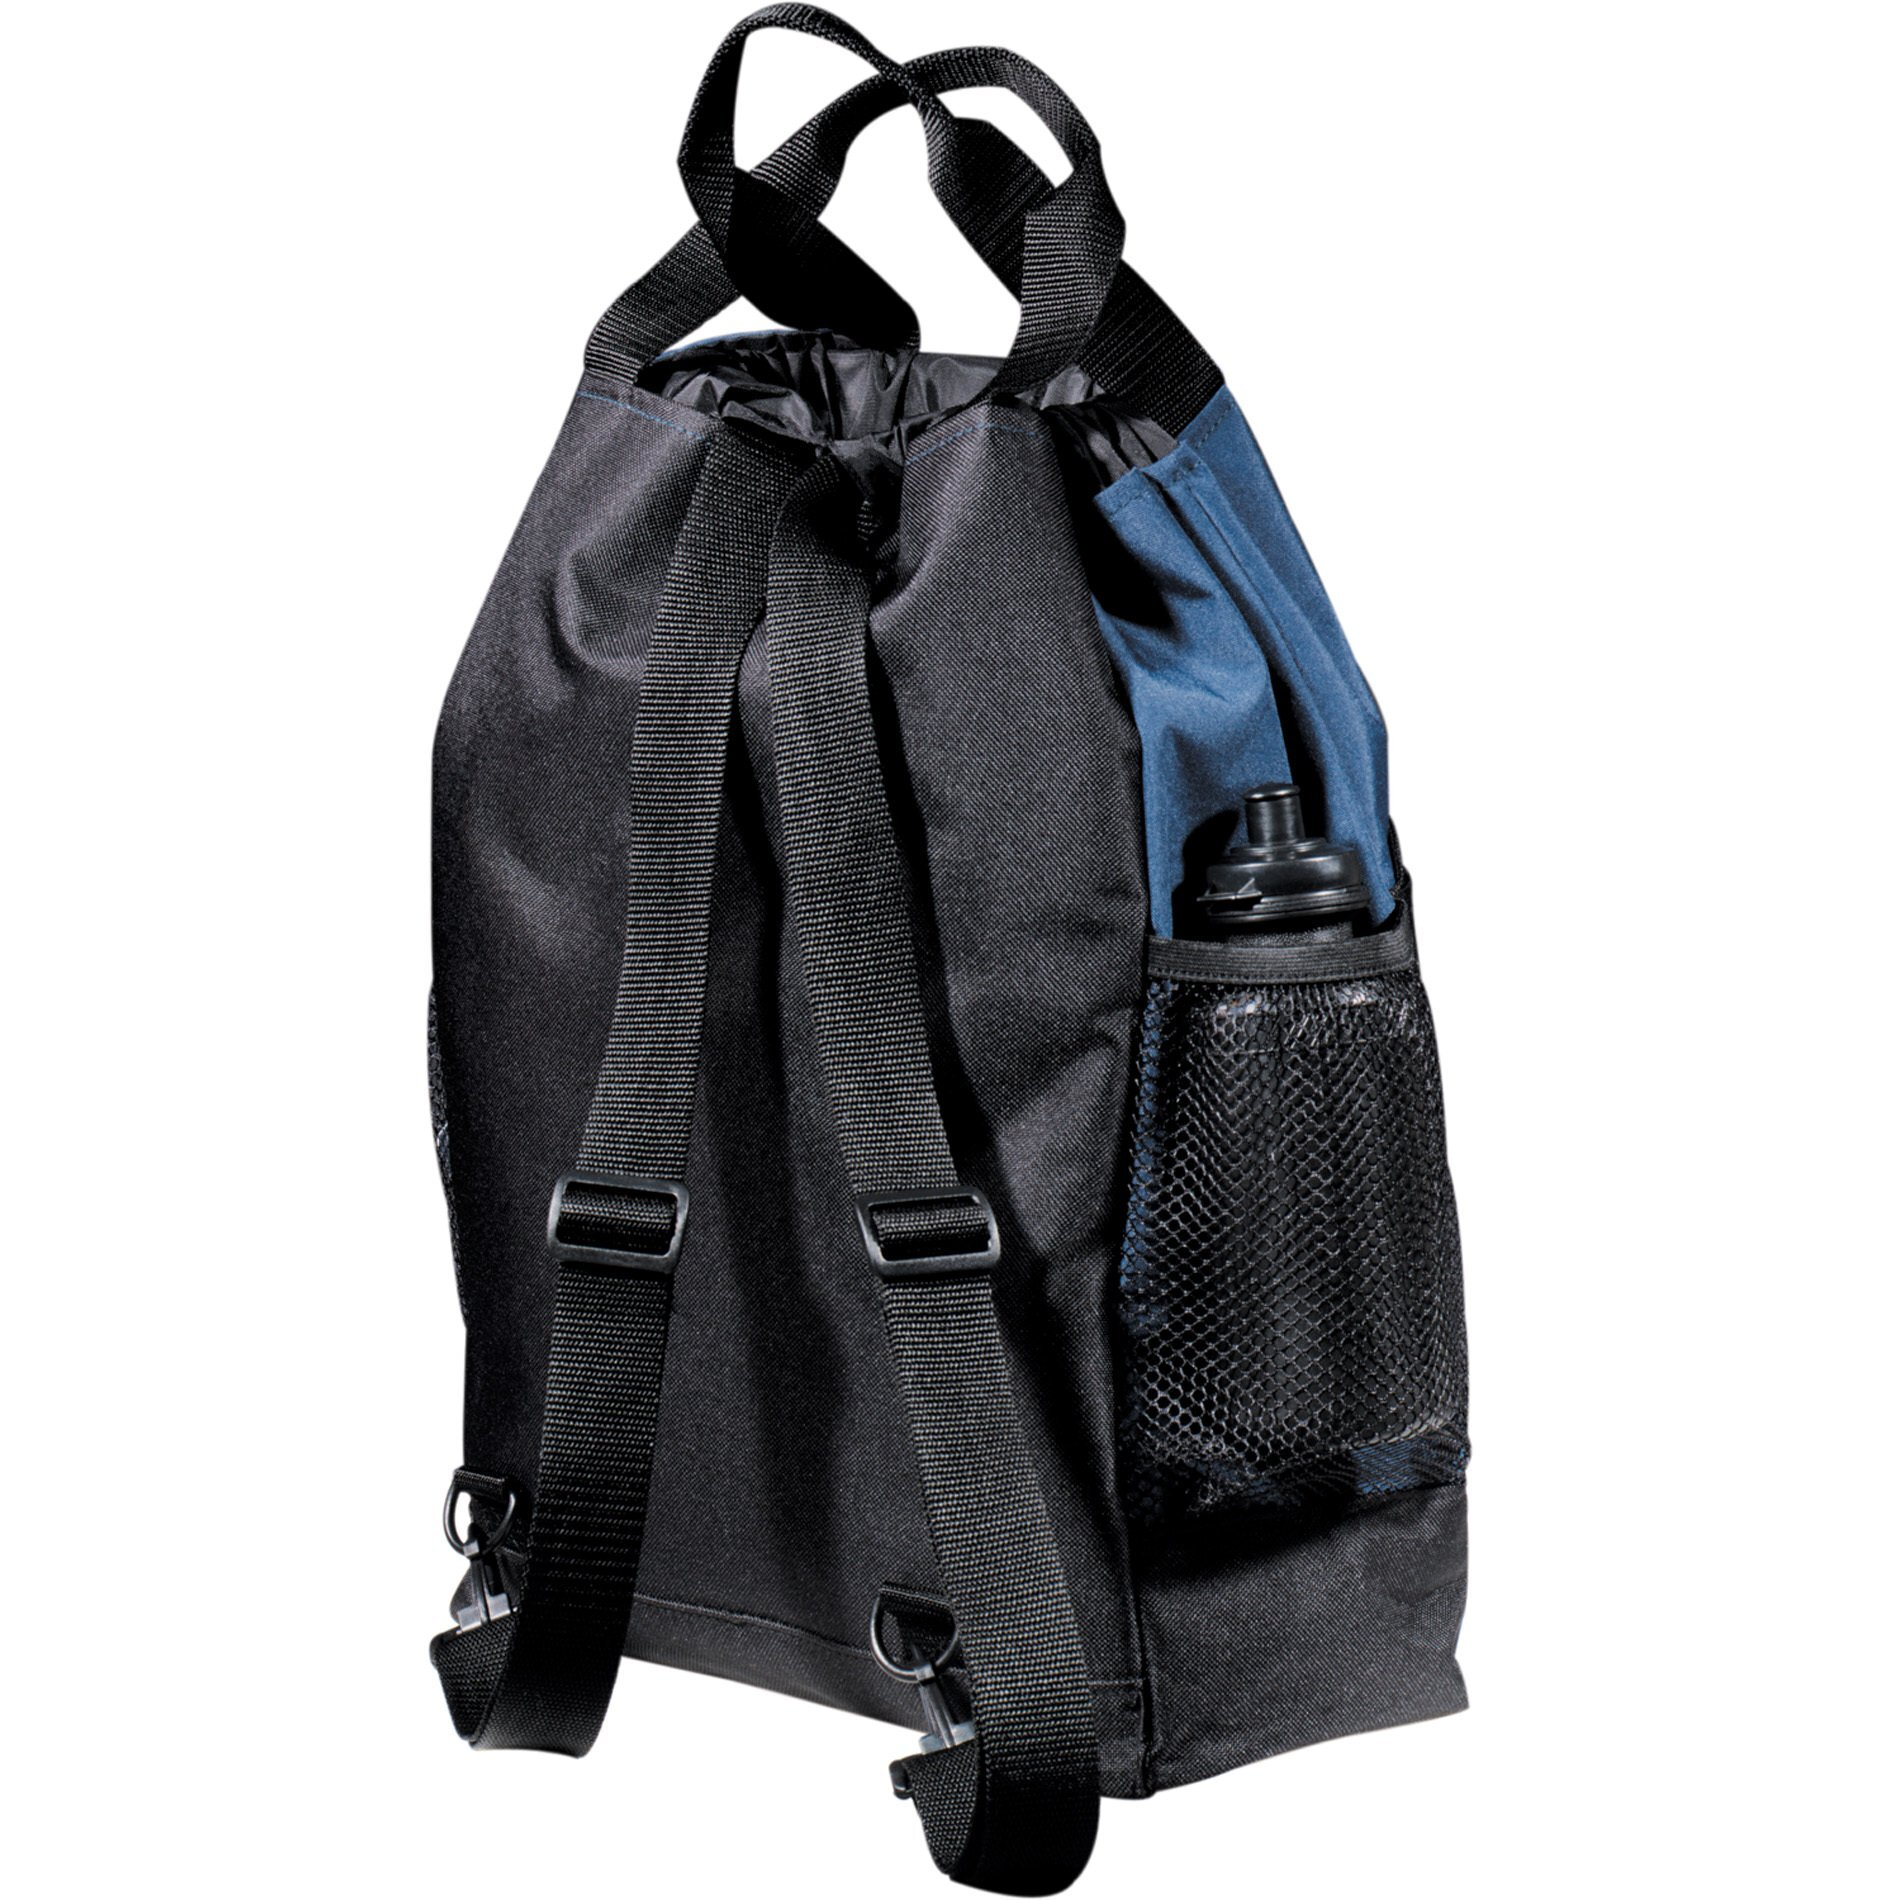 Eclipse 600D Convertible Backpack Tote